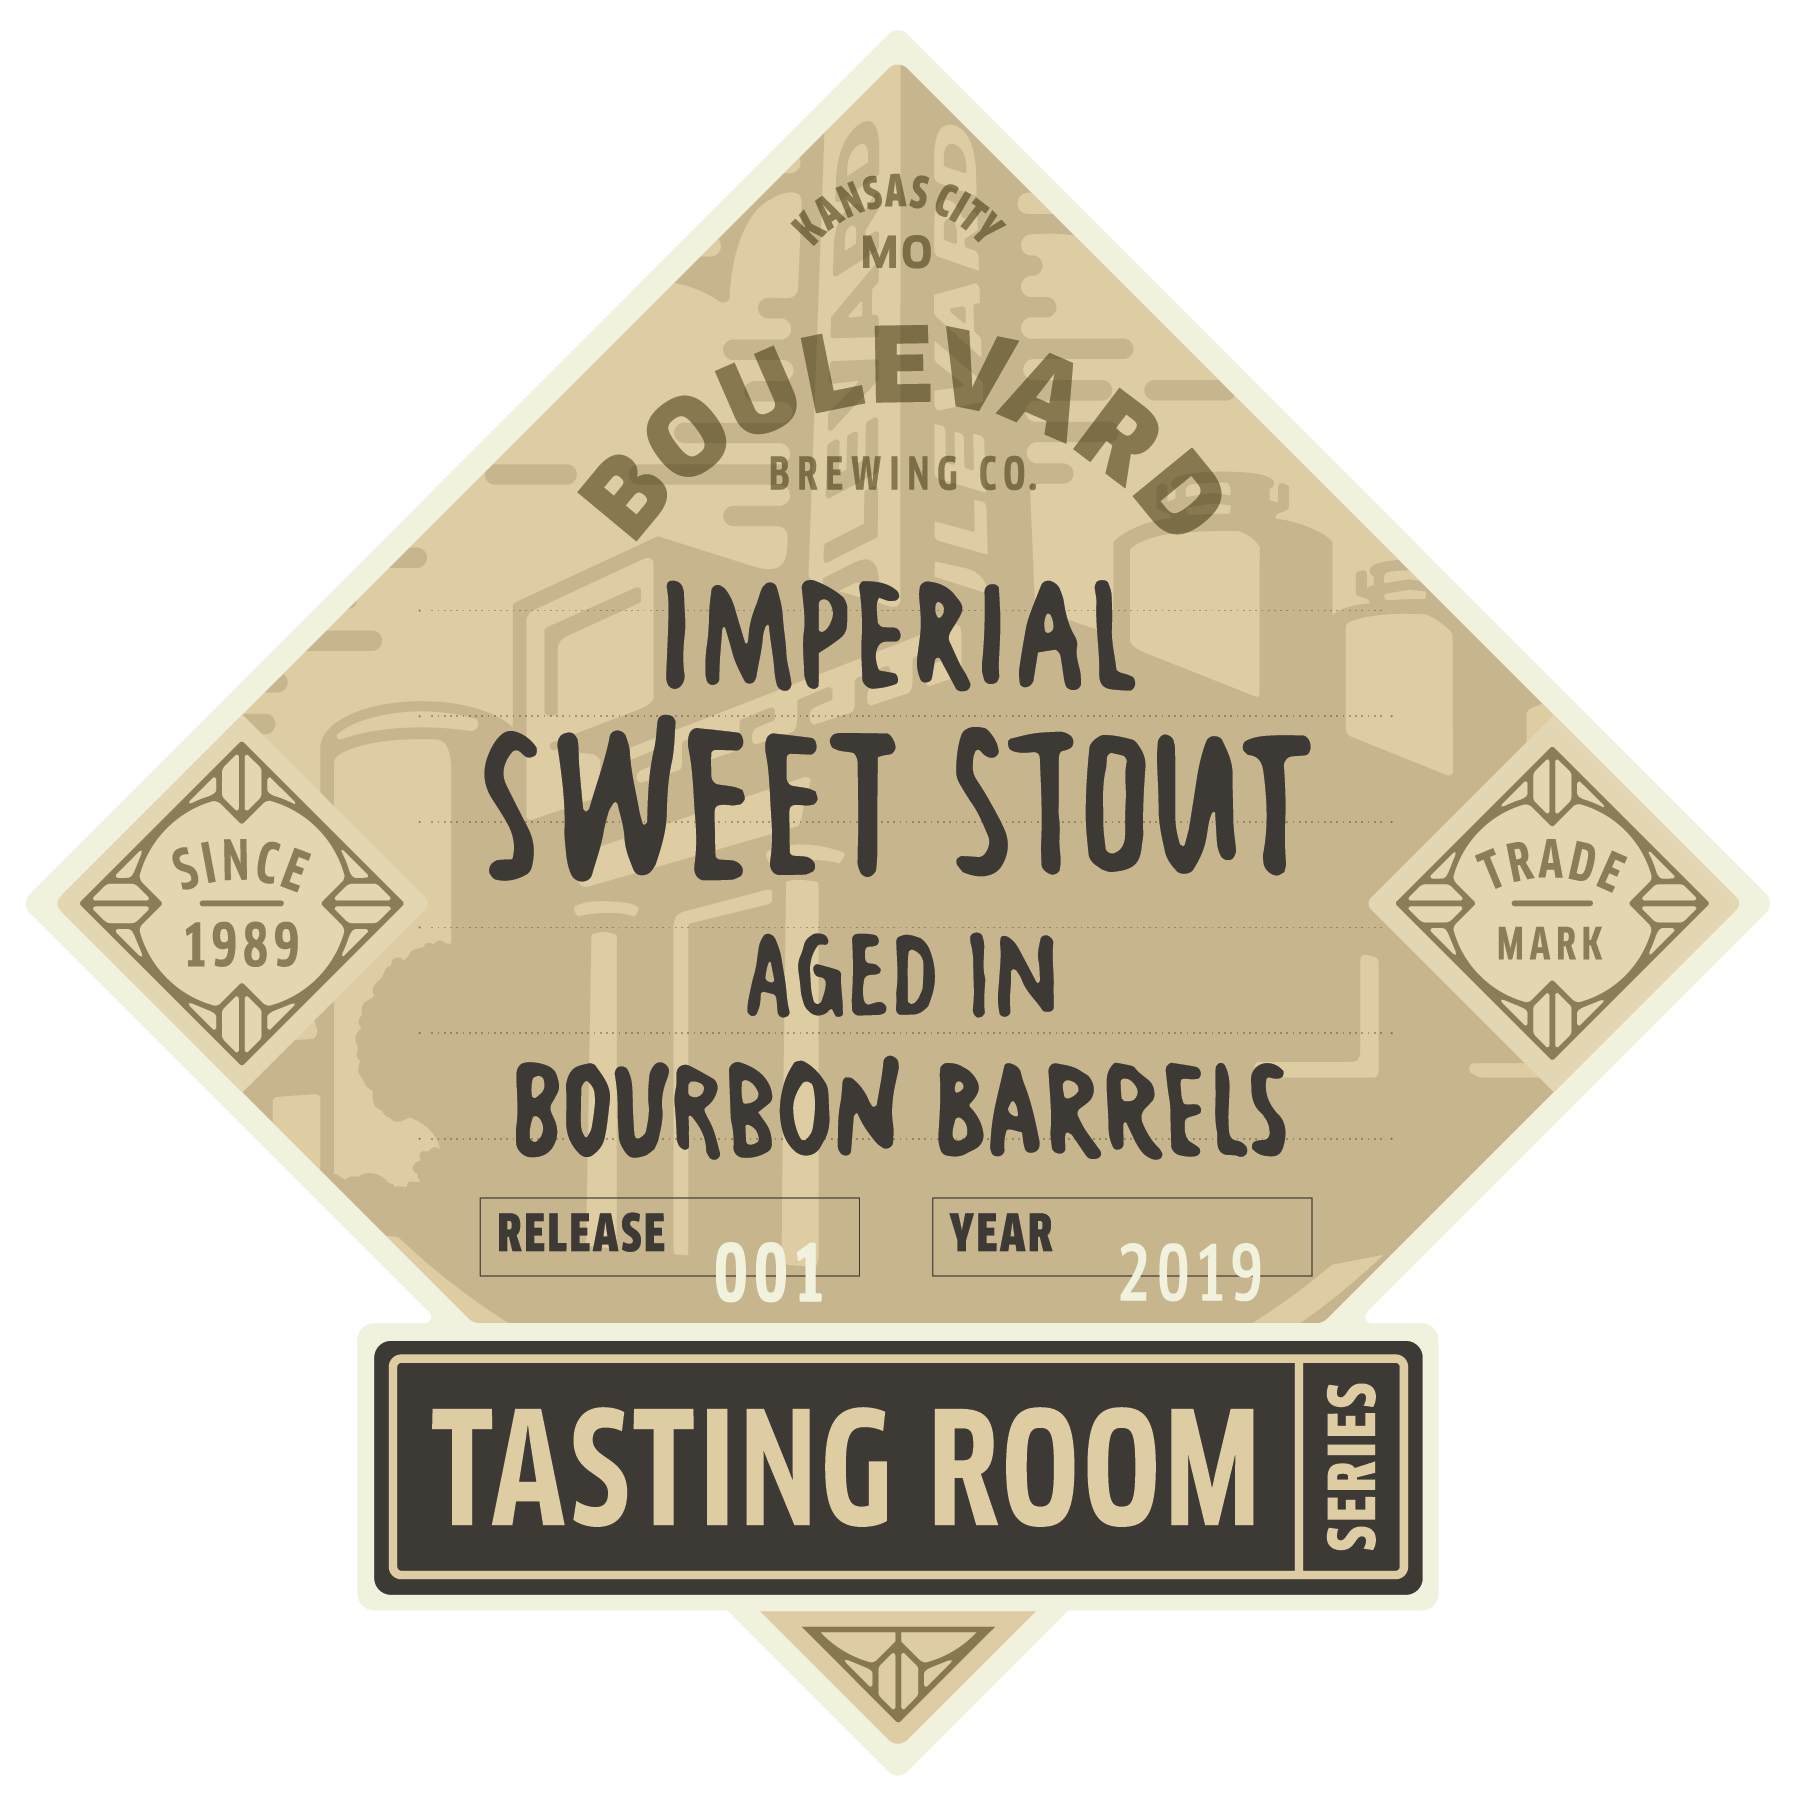 Tasting Room – Imperial Sweet Stout aged in Bourbon Barrels